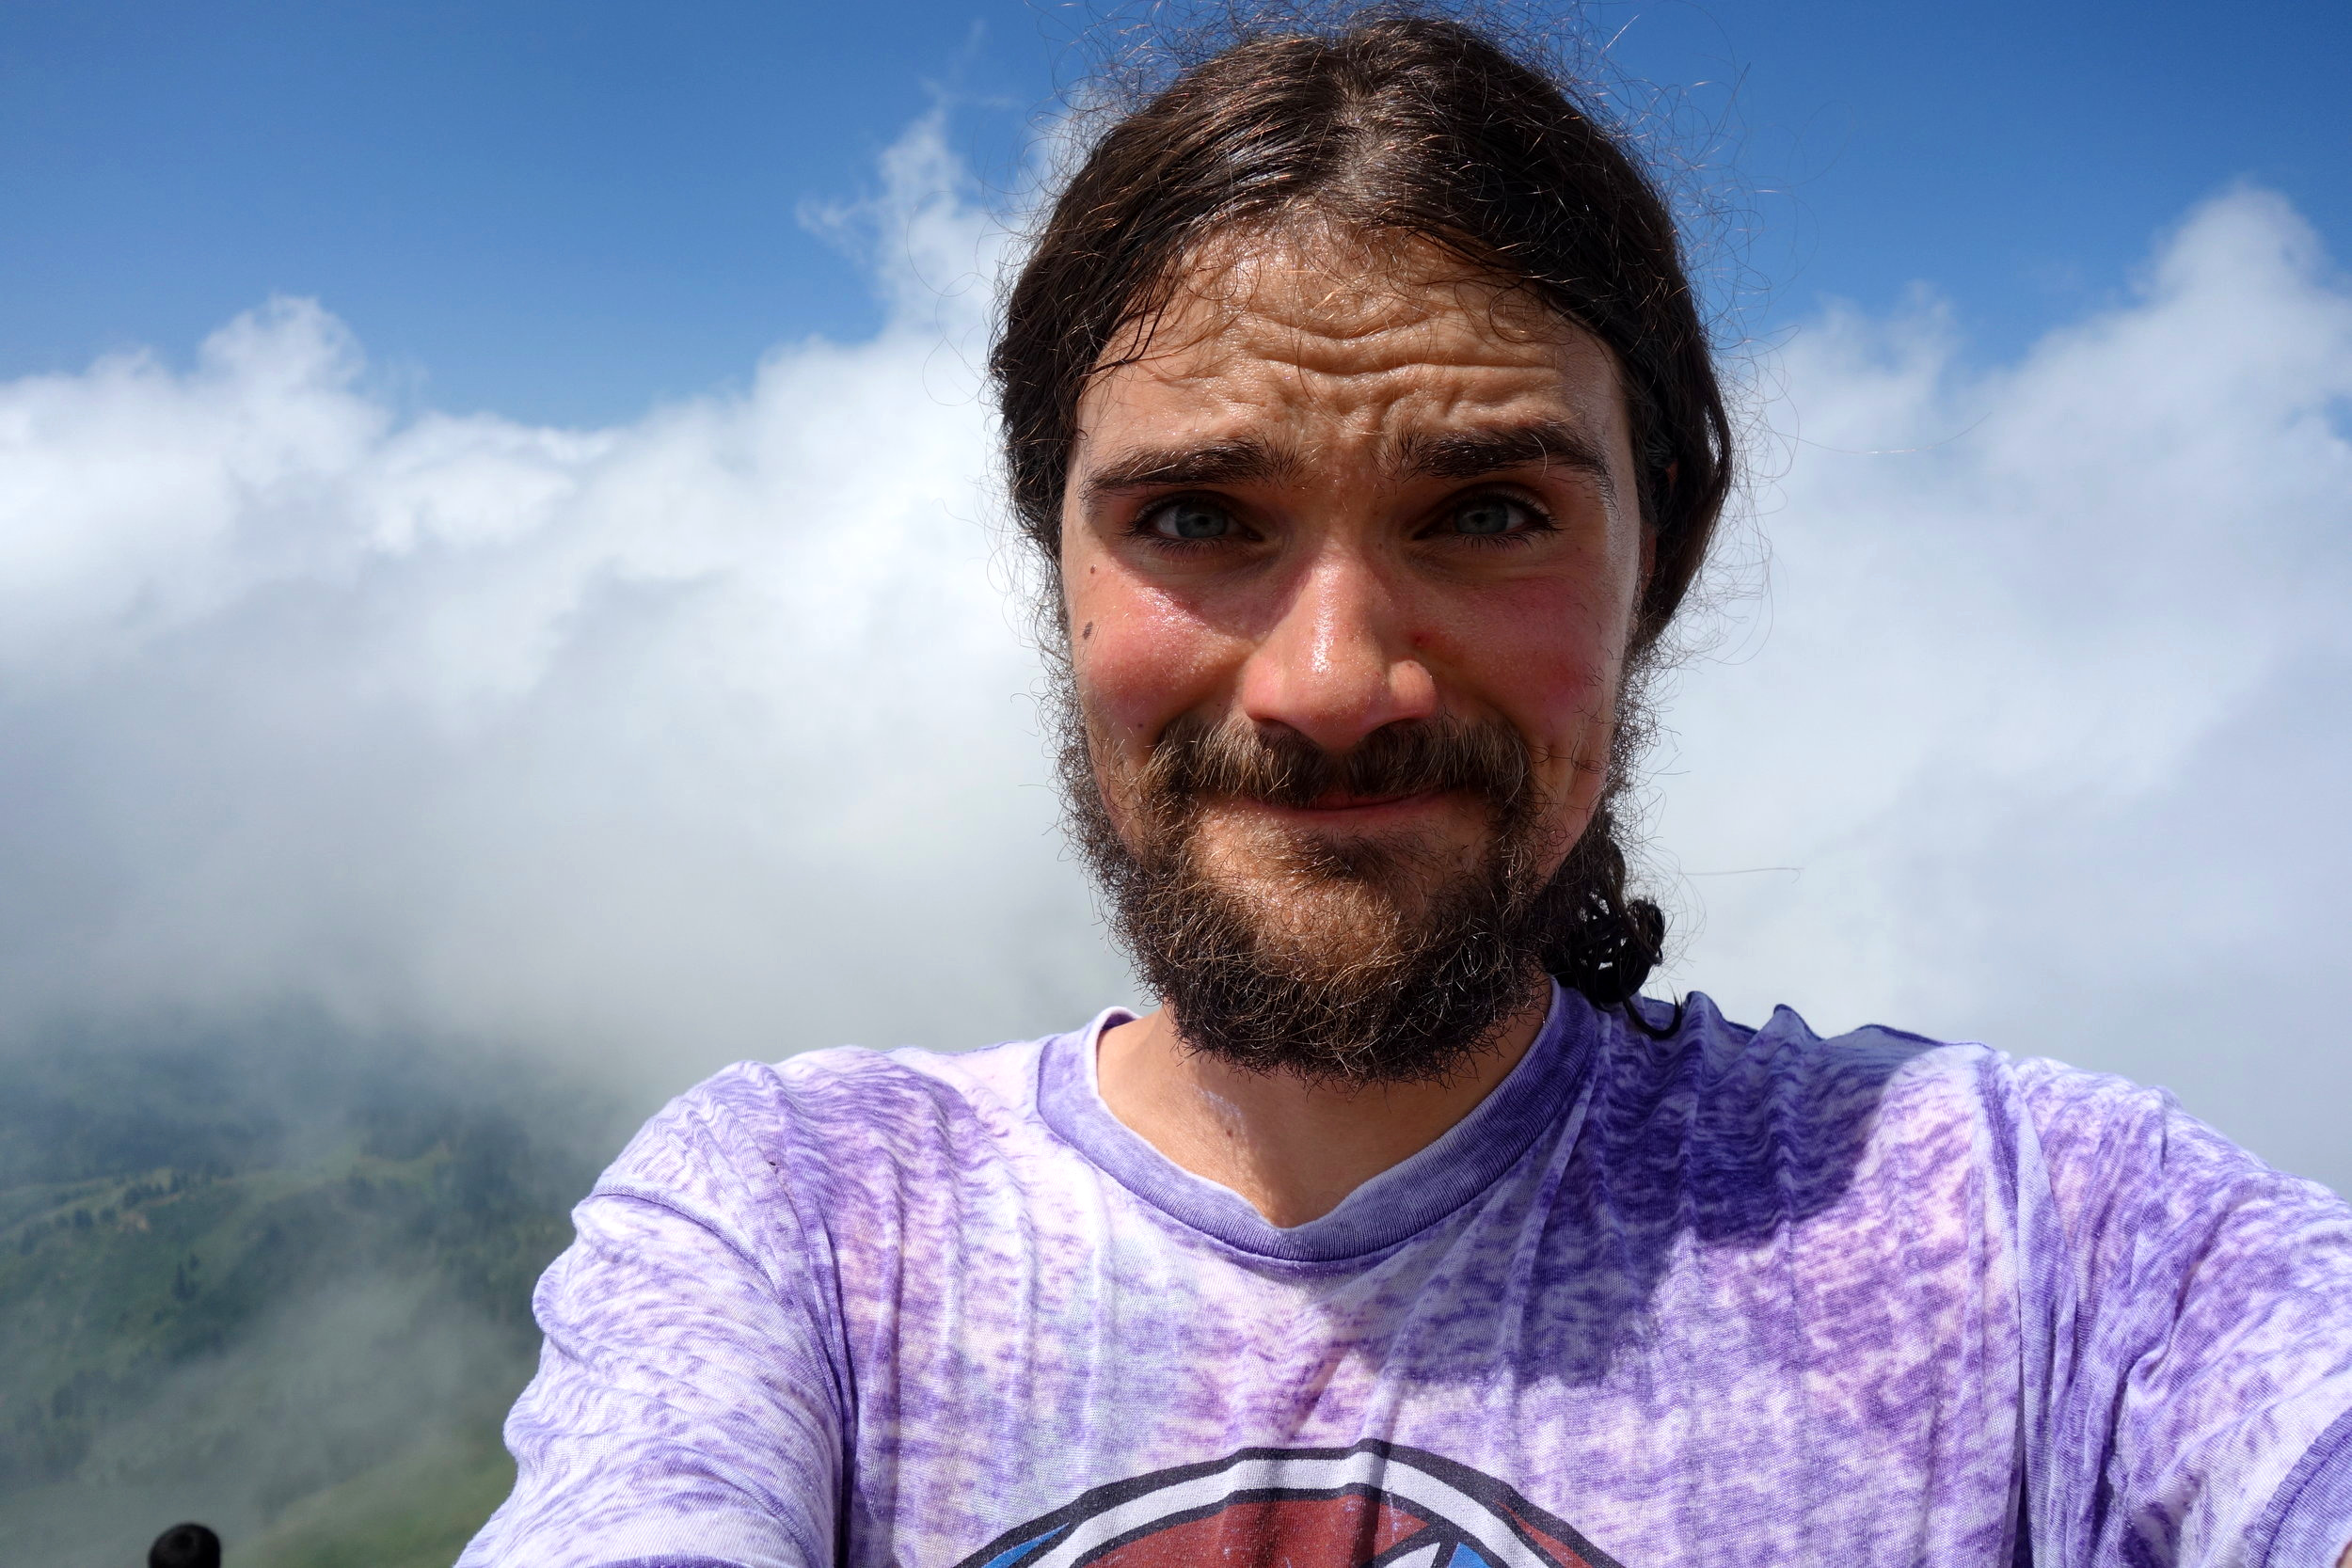 Top of a mountain, in the clouds and wearing a Grateful Dead shirt. The Life.